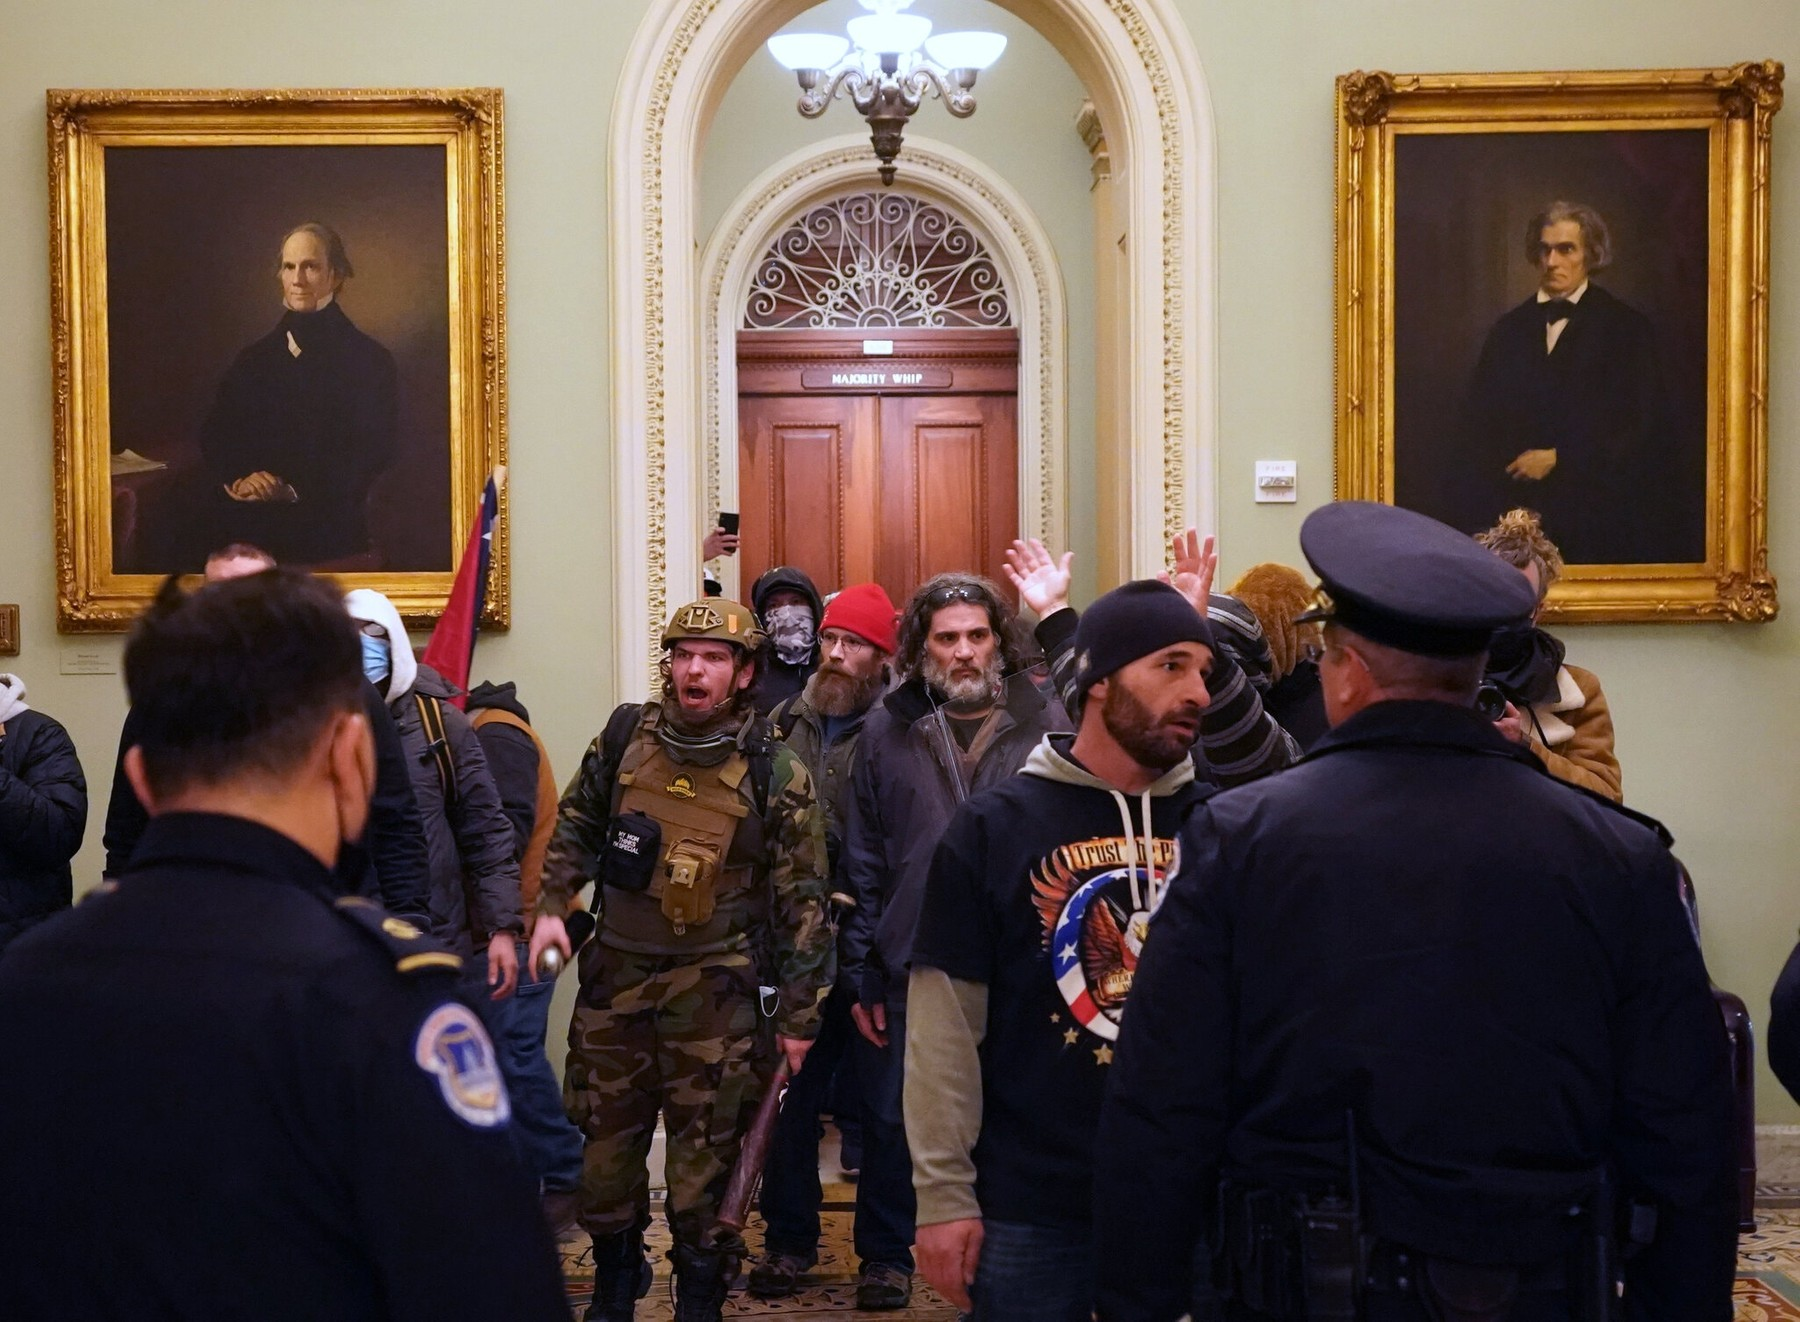 06dcprotests-blog-protesters-inside-superjumbo.jpg?quality=90-auto=webp